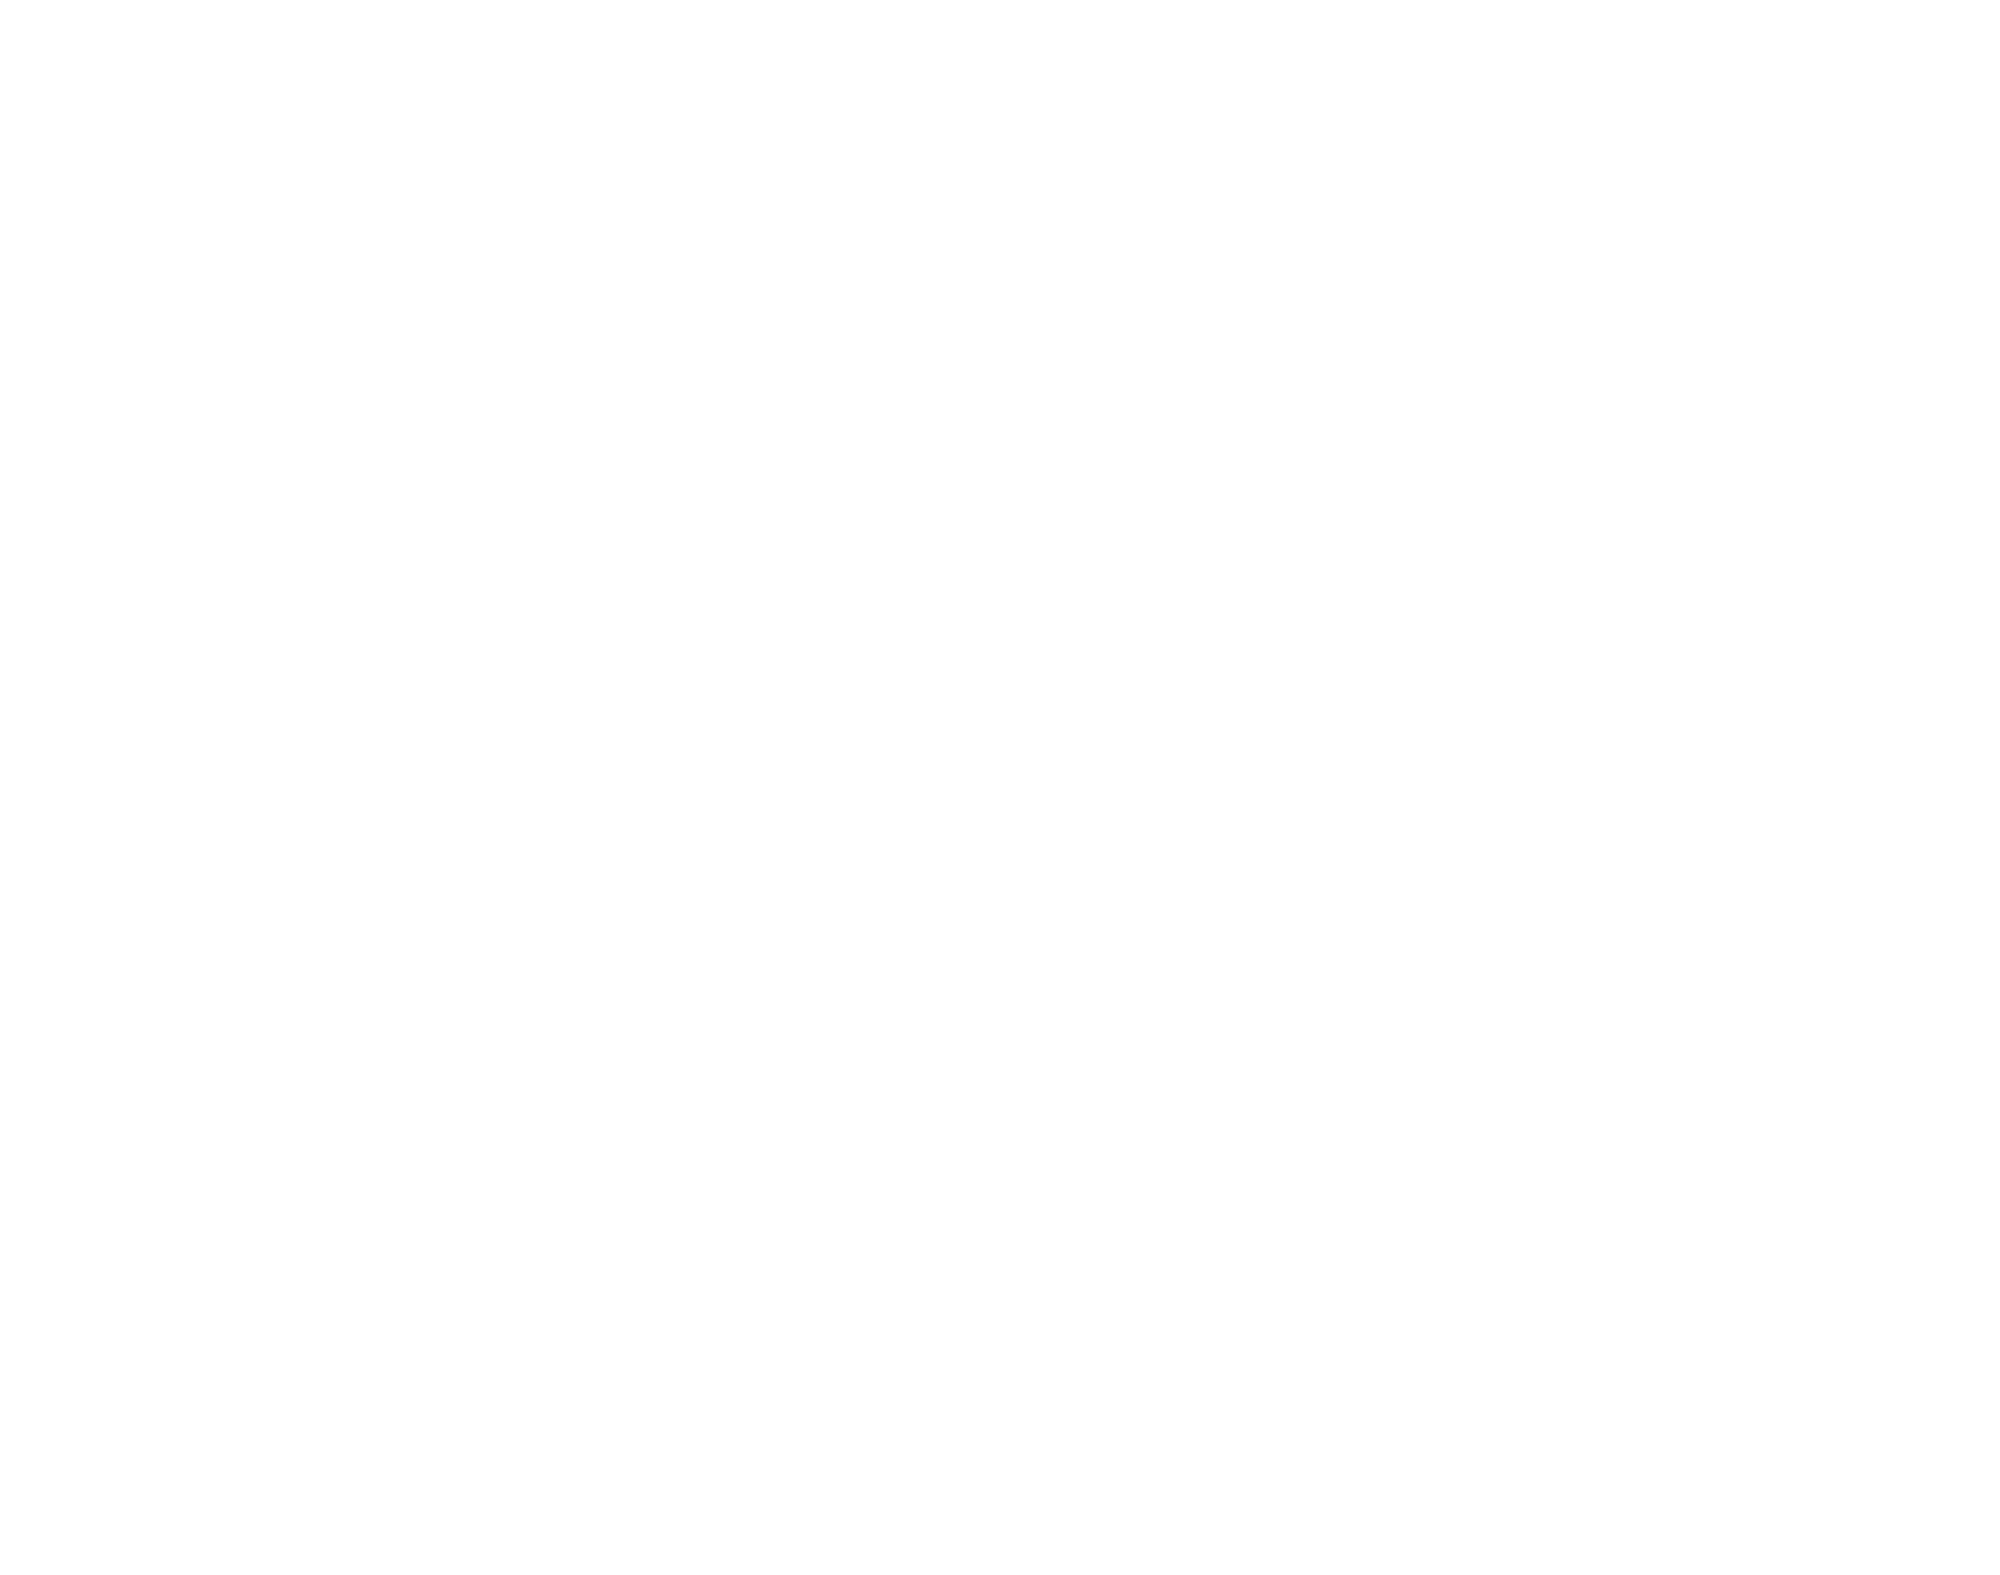 Alta Citizen